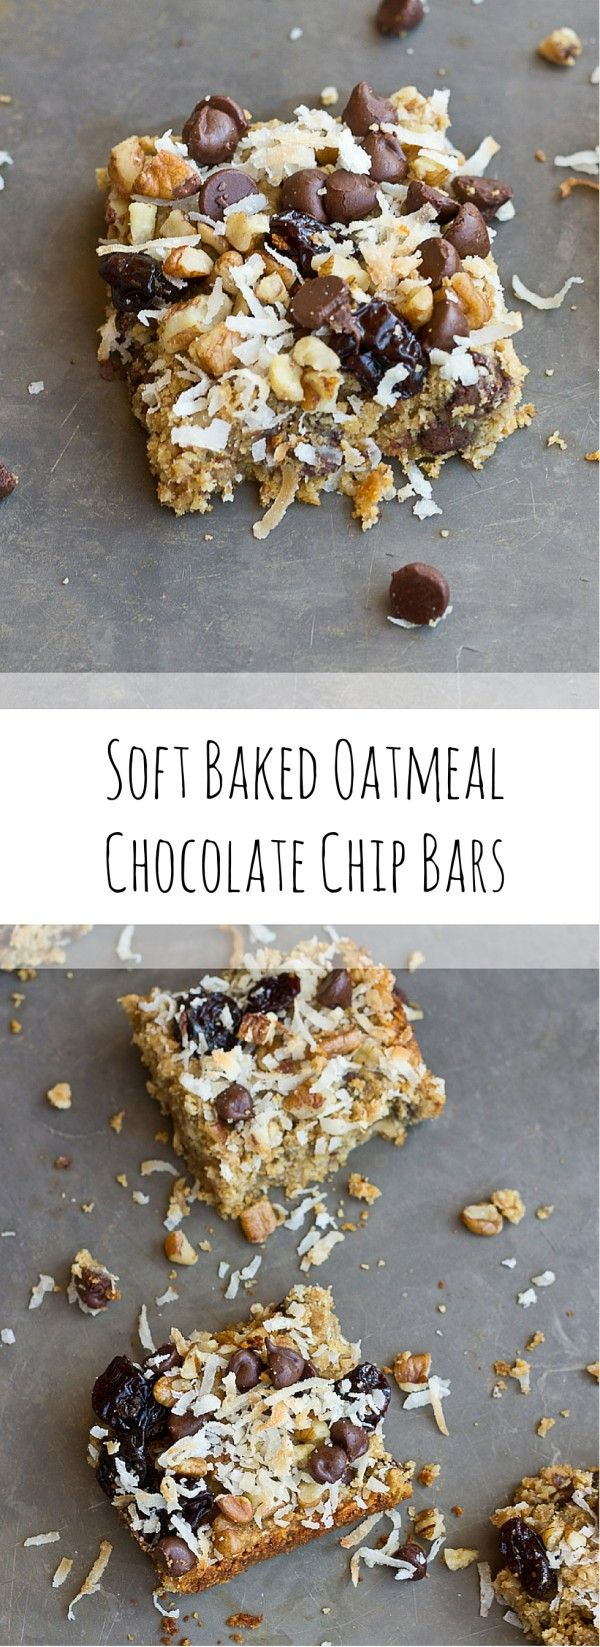 These Soft Baked Oatmeal Chocolate Chip Bars are soooooft and oooh so gooooewy. Healthy enough for a breakfast bar or enjoy as snack or dessert any time of day. Love the chocolate chunks in every bite! Vegan and Gluten Free